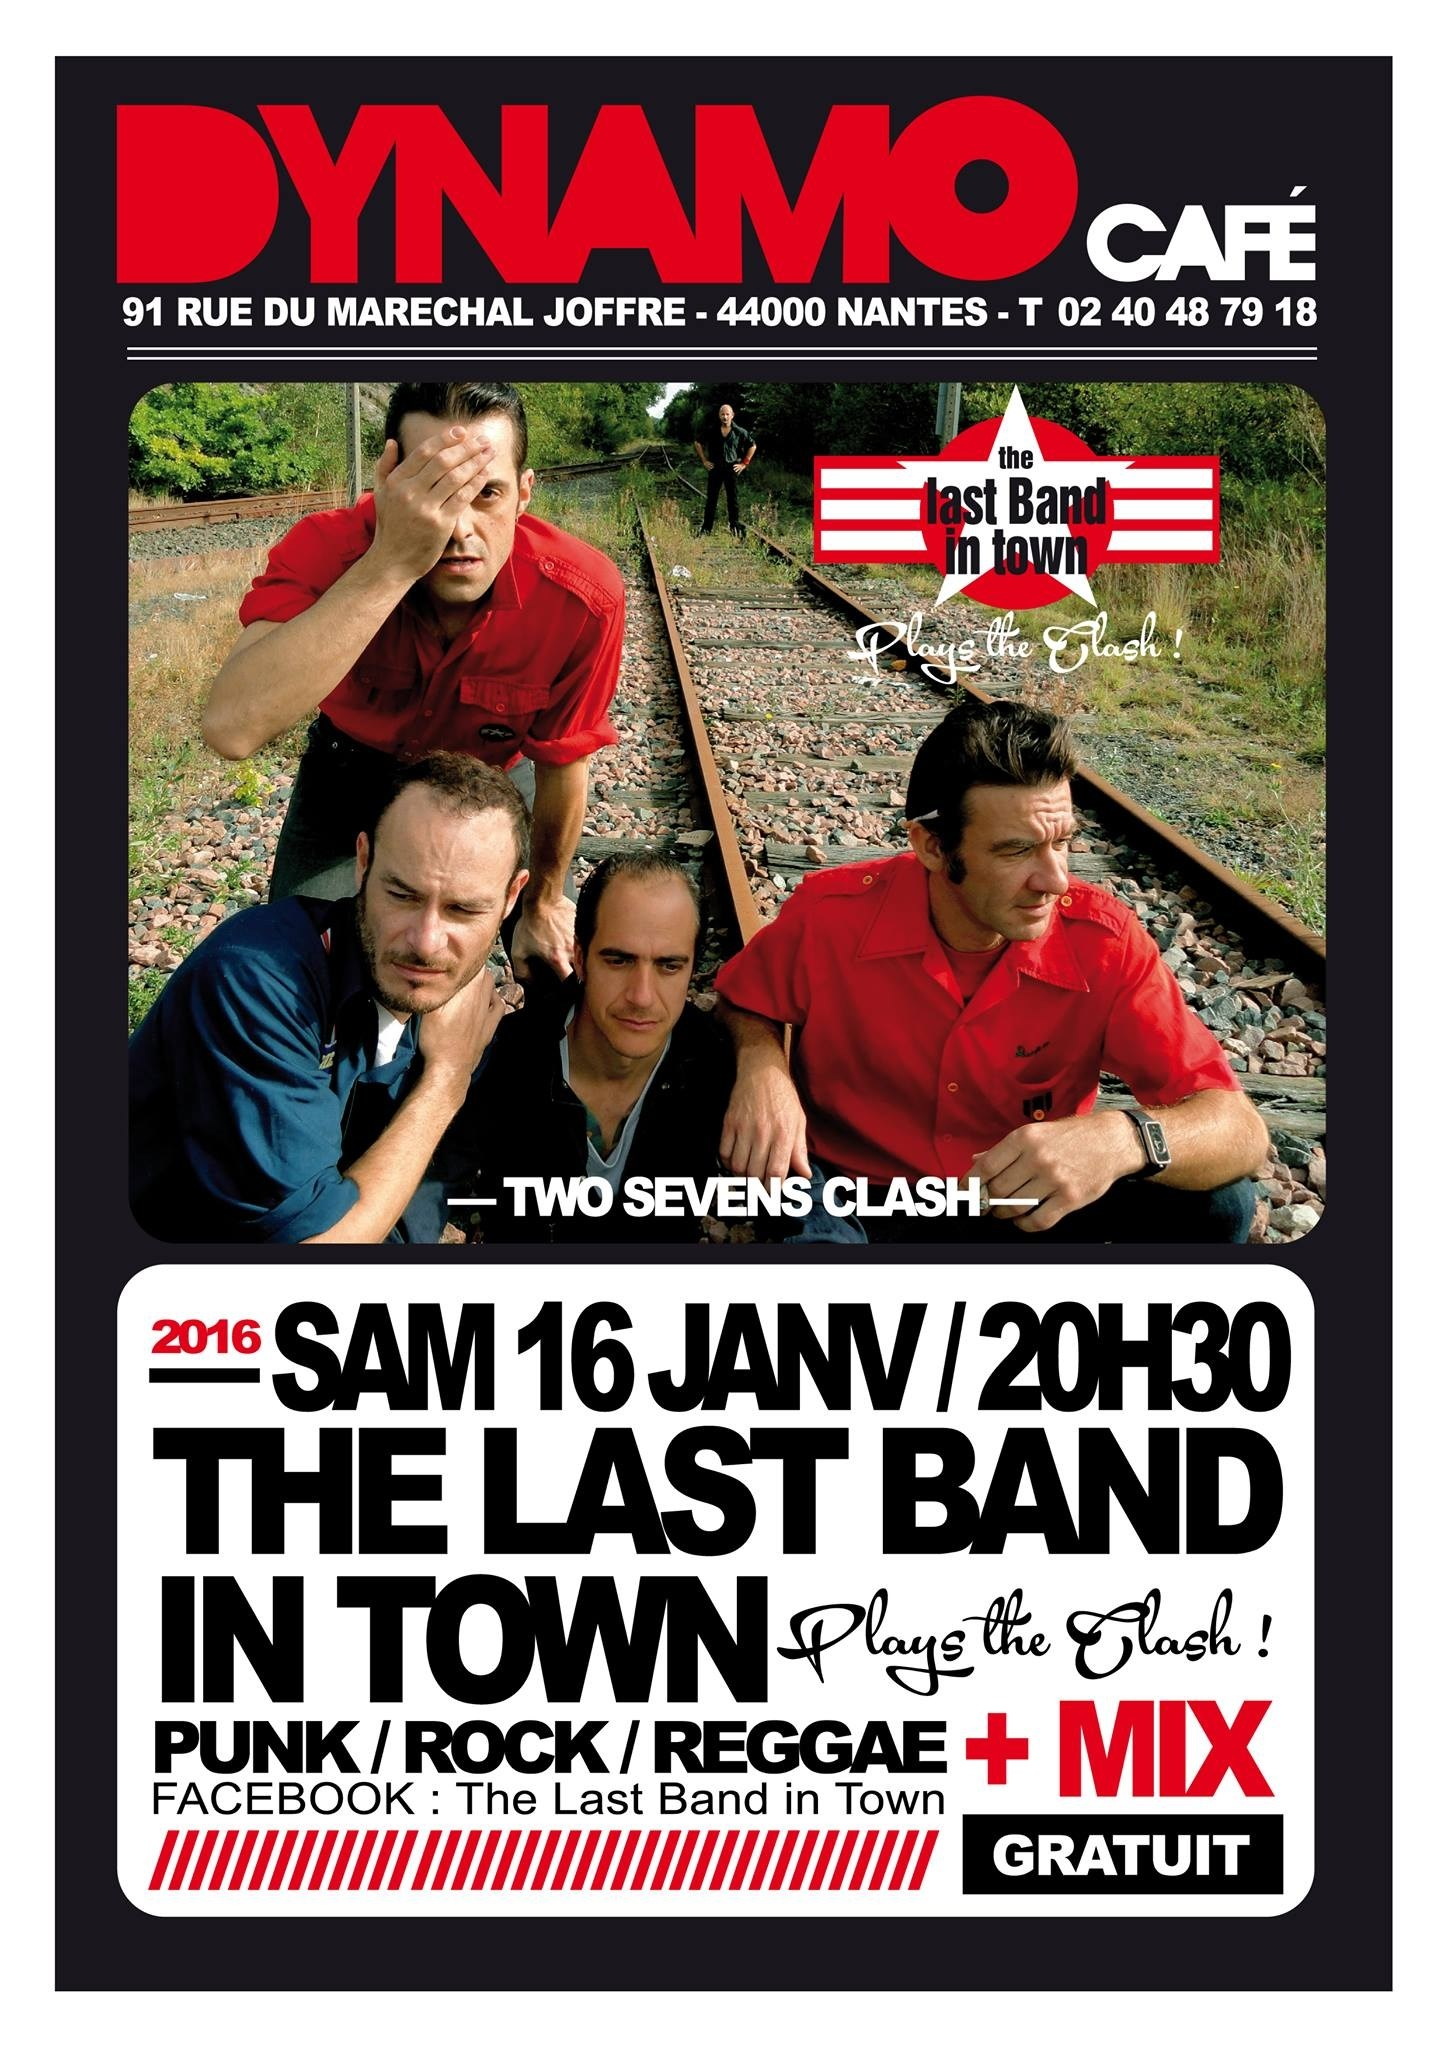 The last band in town plays The clash Nantes